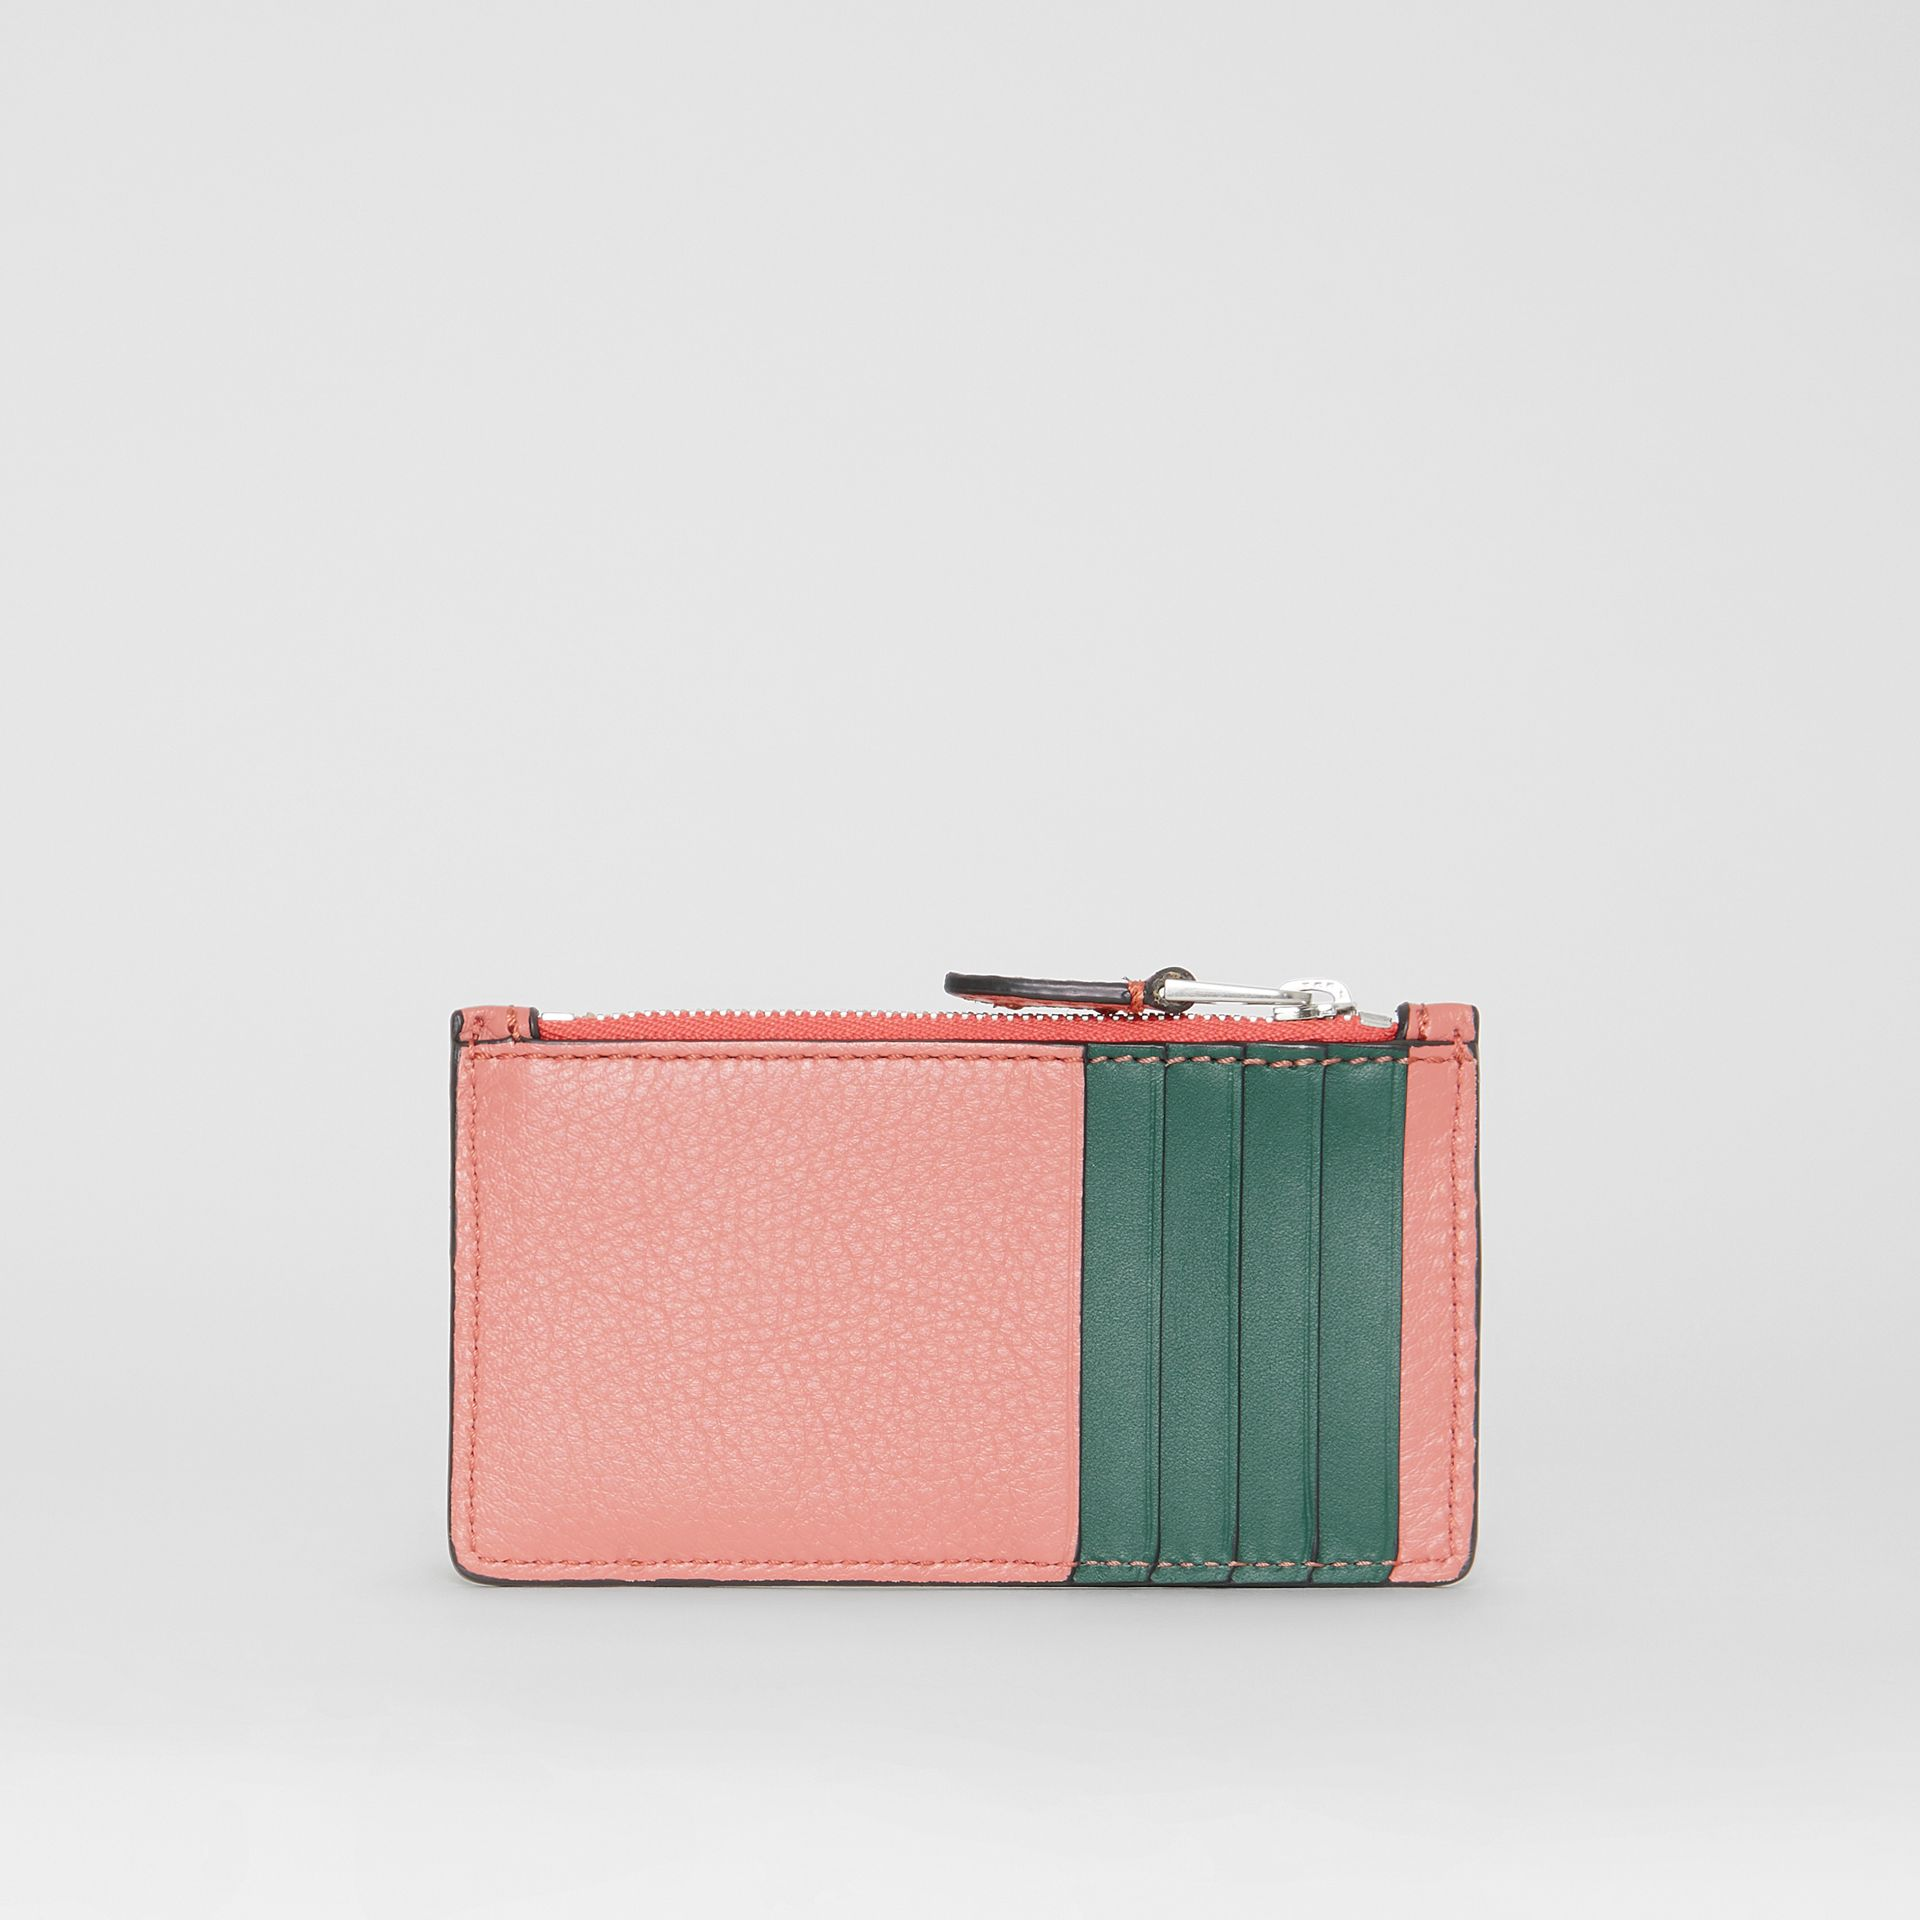 Two-tone Leather Zip Card Case in Dusty Rose - Women | Burberry United States - gallery image 4